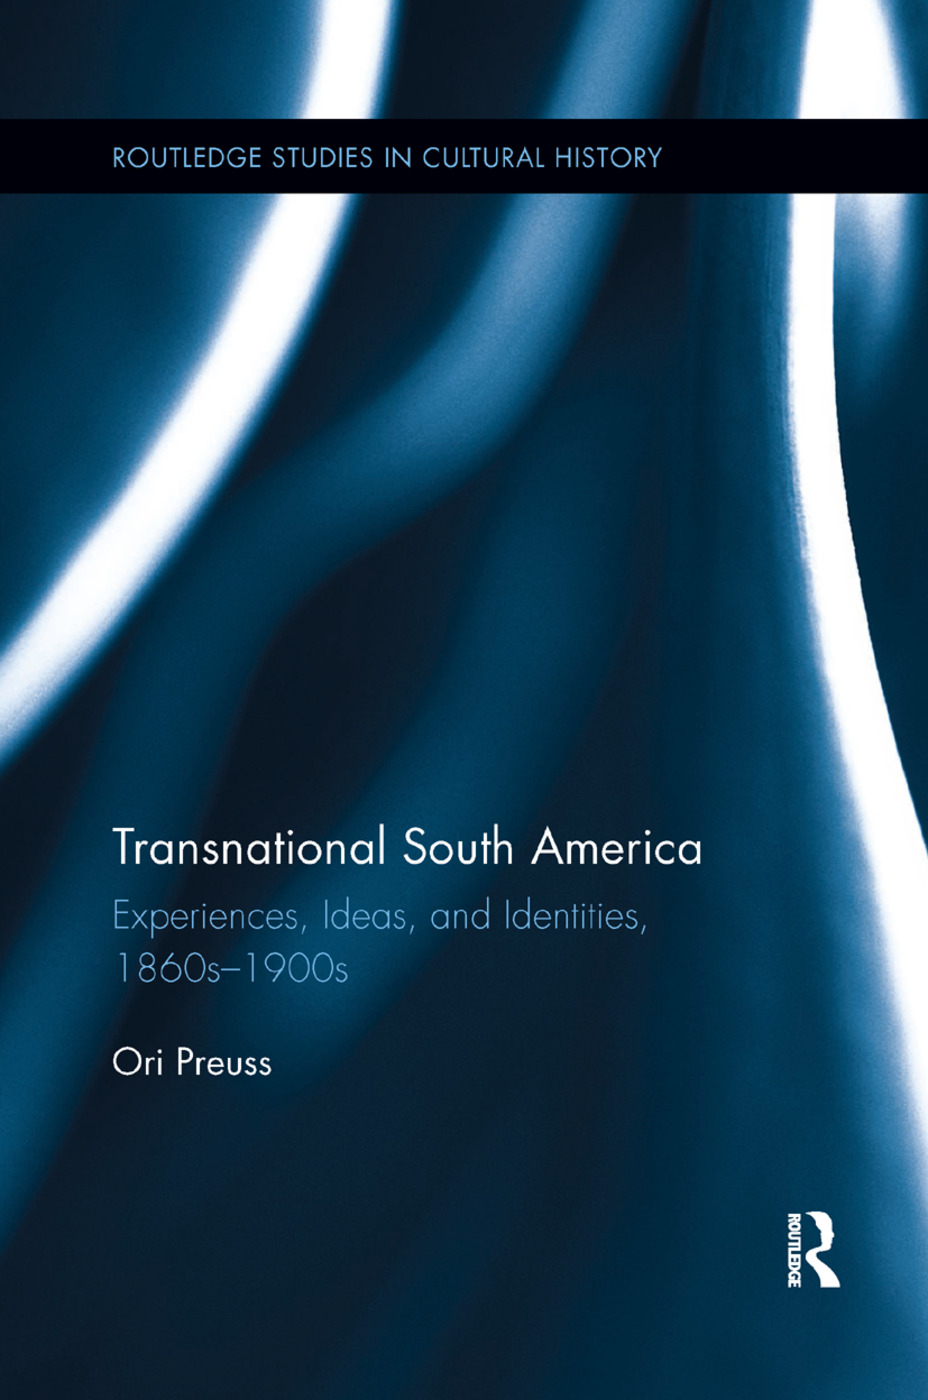 Transnational South America: Experiences, Ideas, and Identities, 1860s-1900s book cover